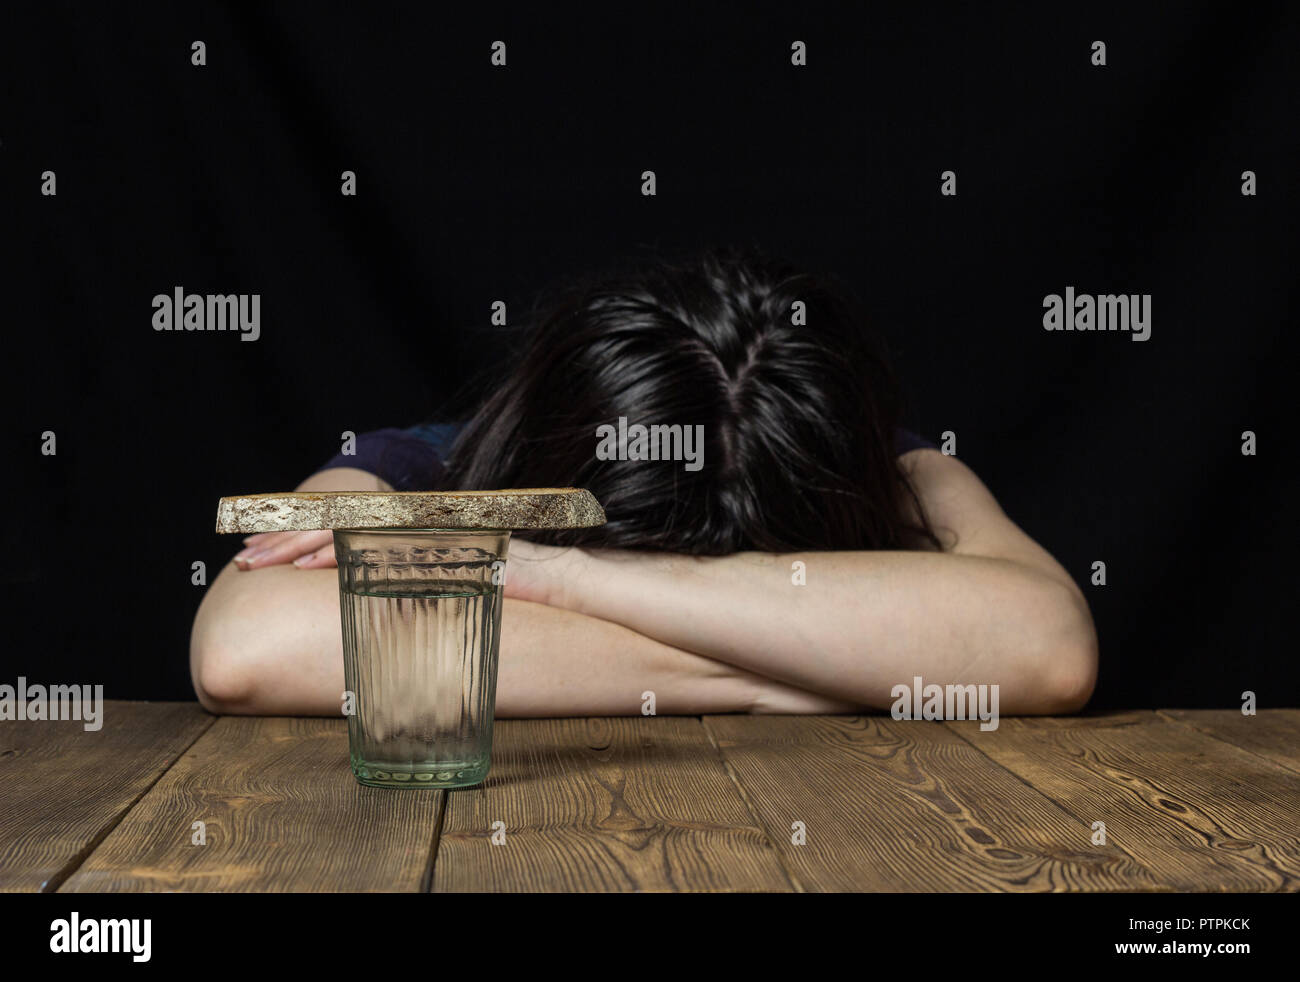 A glass of water and a piece of bread, the girl is lying on the table and lapachet, black background, sorrow - Stock Image